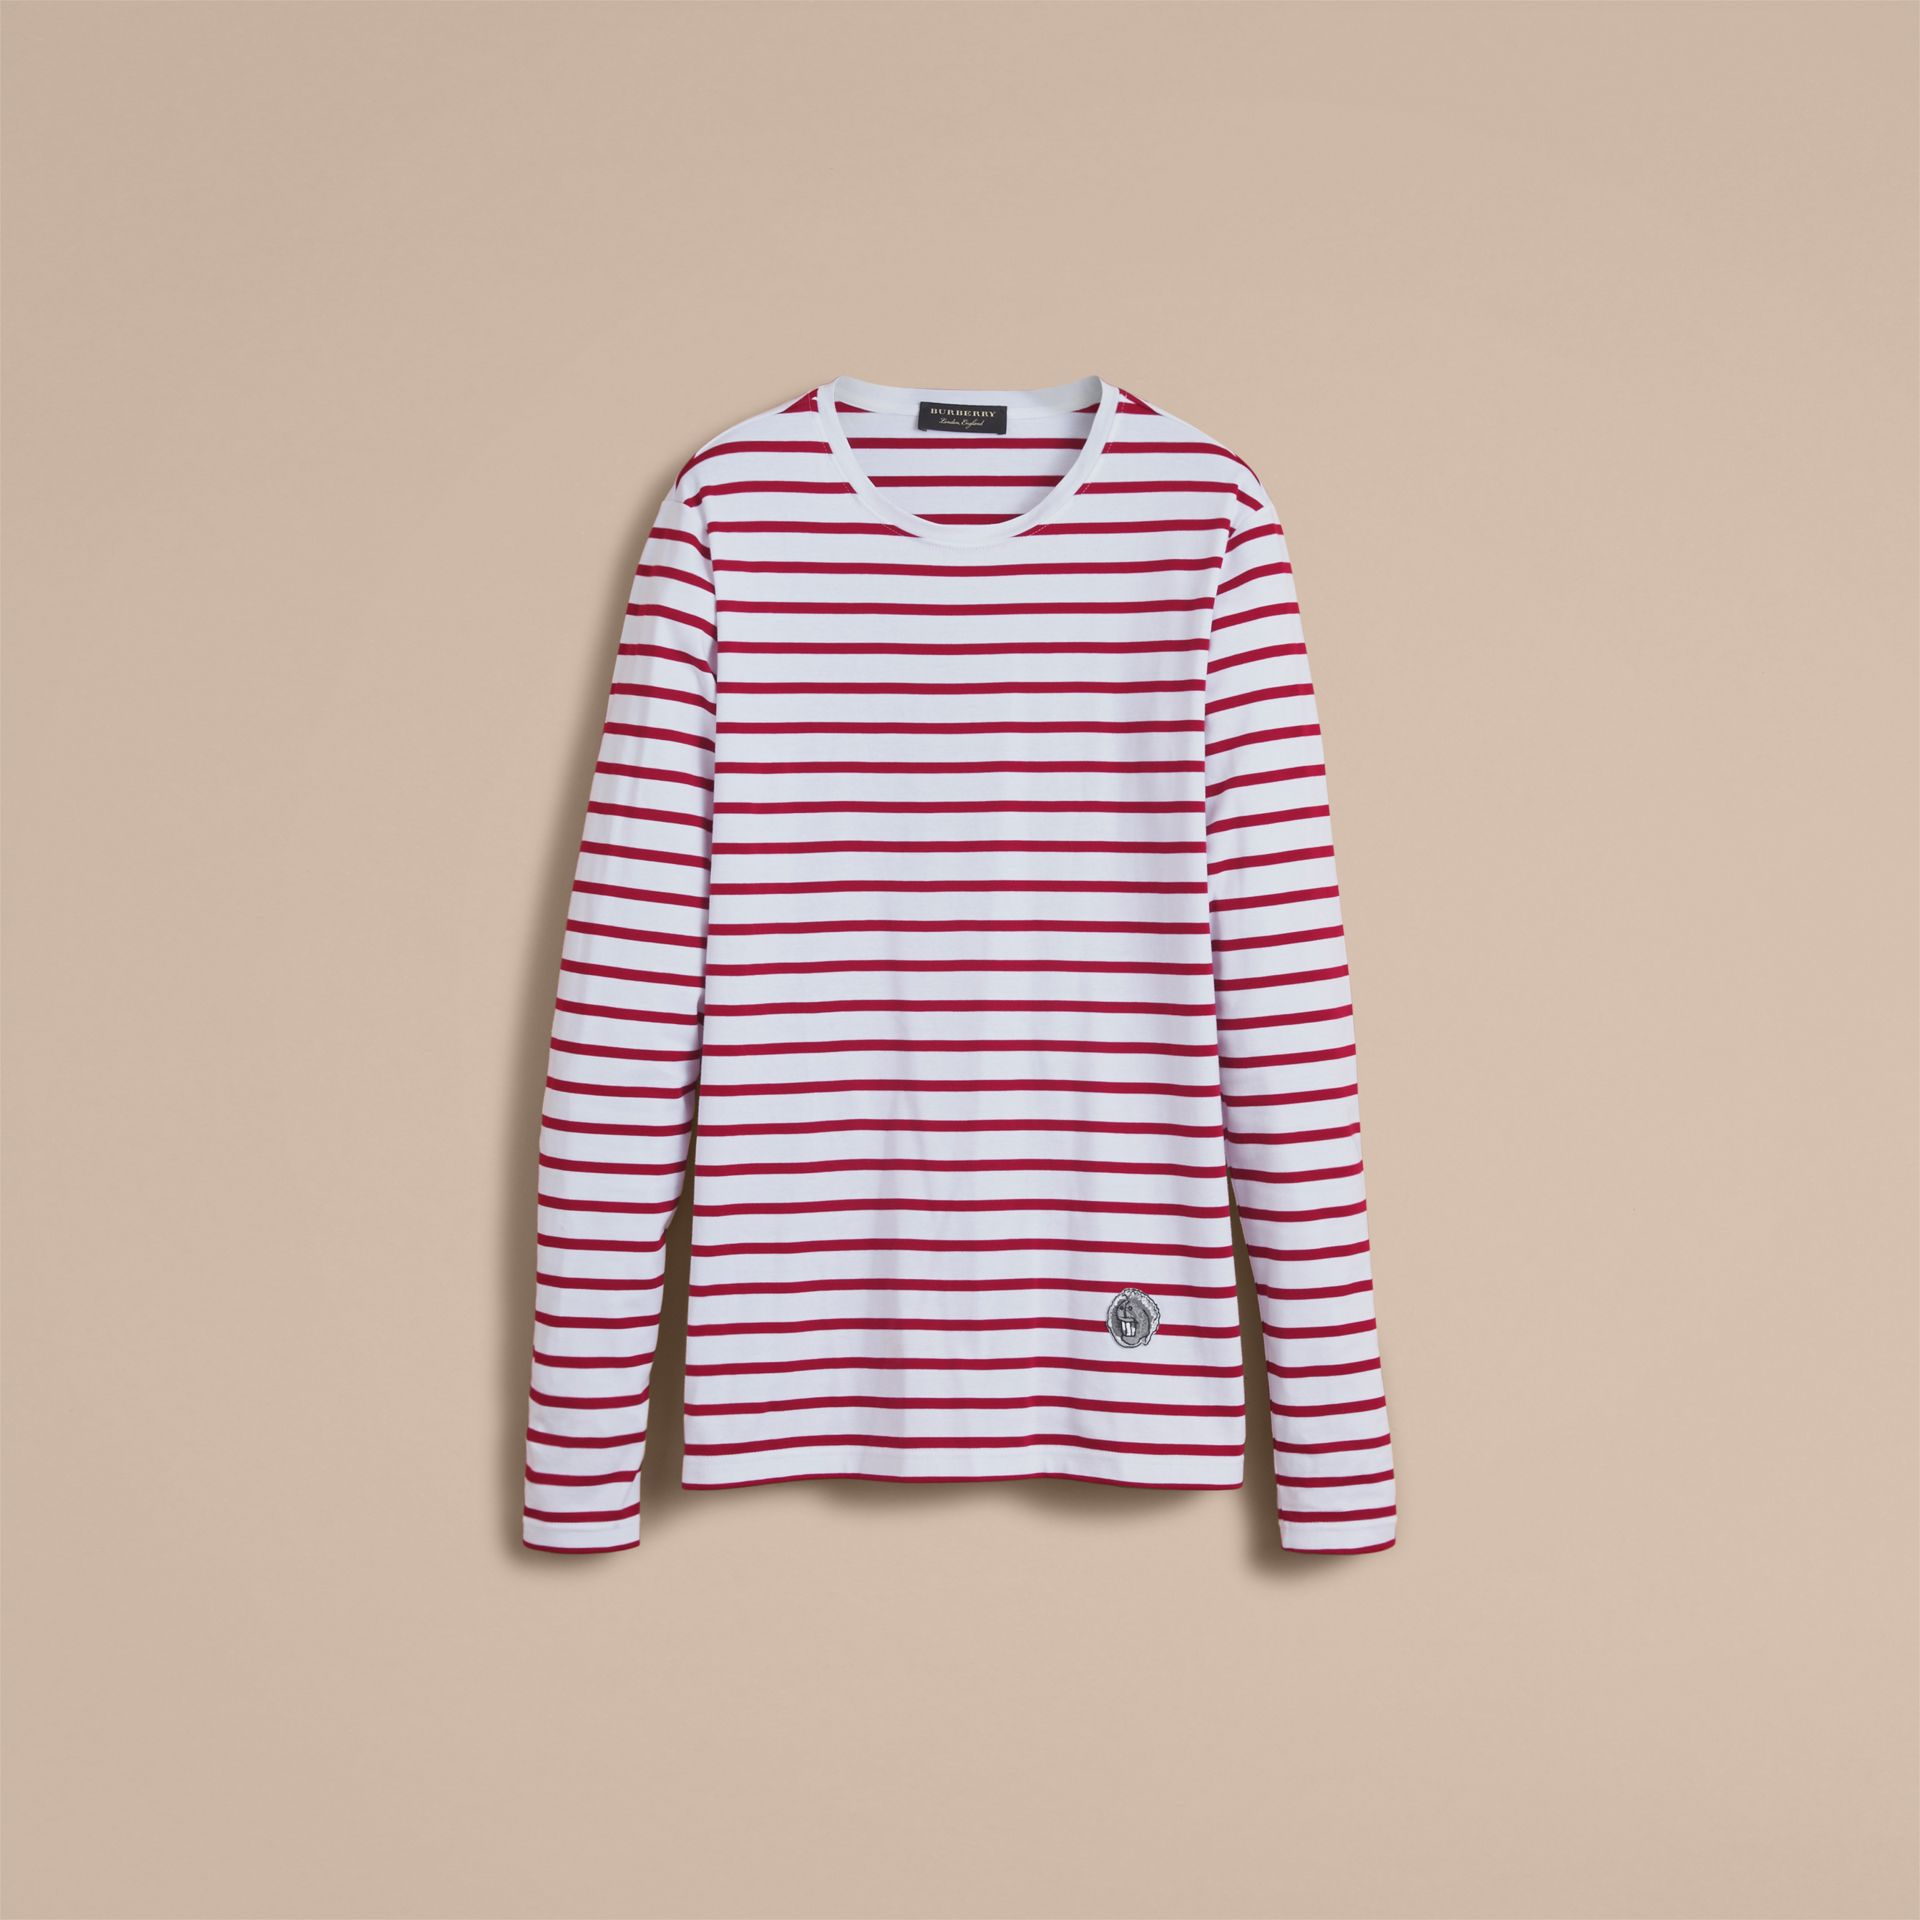 Unisex Pallas Heads Motif Breton Stripe Cotton Top - Men | Burberry - gallery image 4